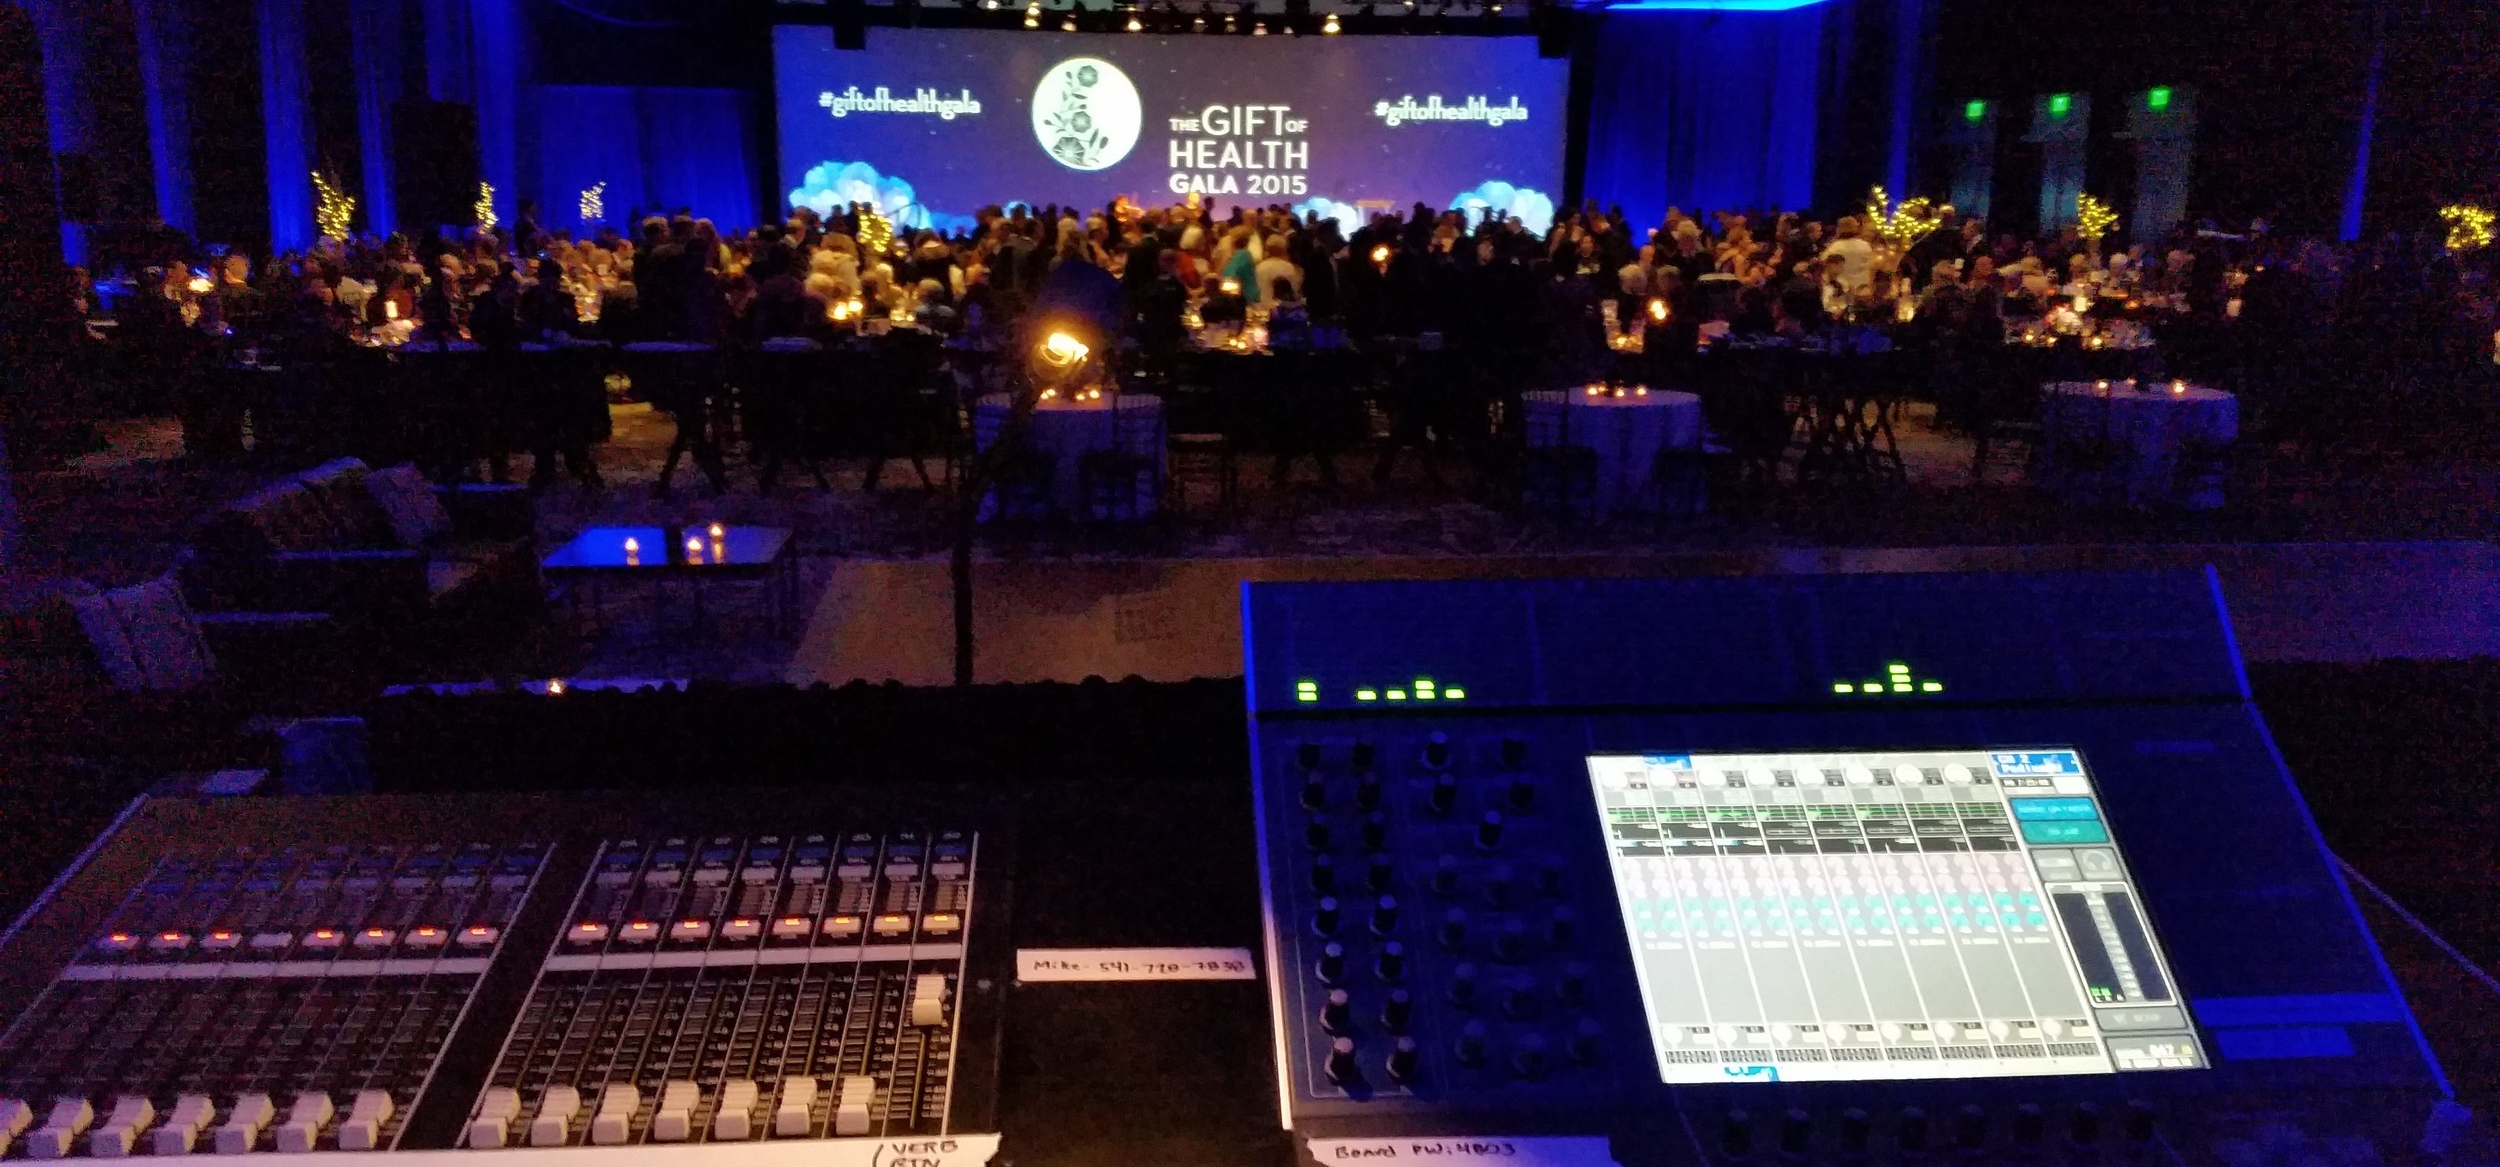 Mixing a fundraiser gala emceed by local TV personality Jesse Jones